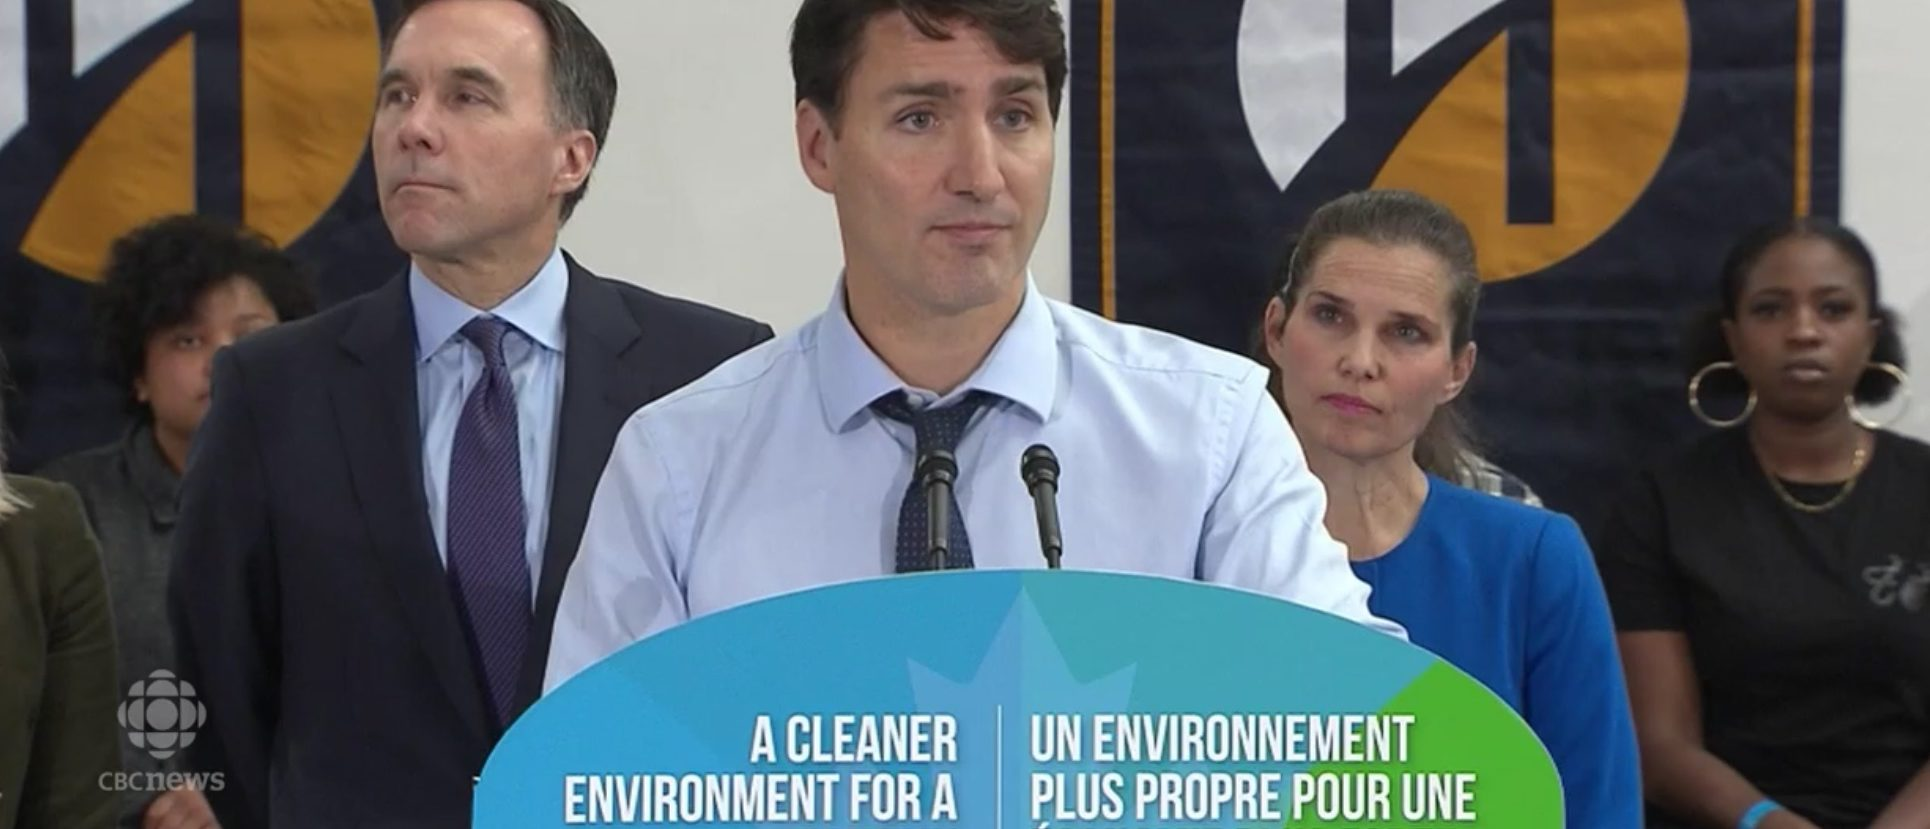 Canadian Prime Minister Justin Trudeau announces carbon tax rebates in Toronto, Ont., Oct. 23, 2018. CBC News screenshot.